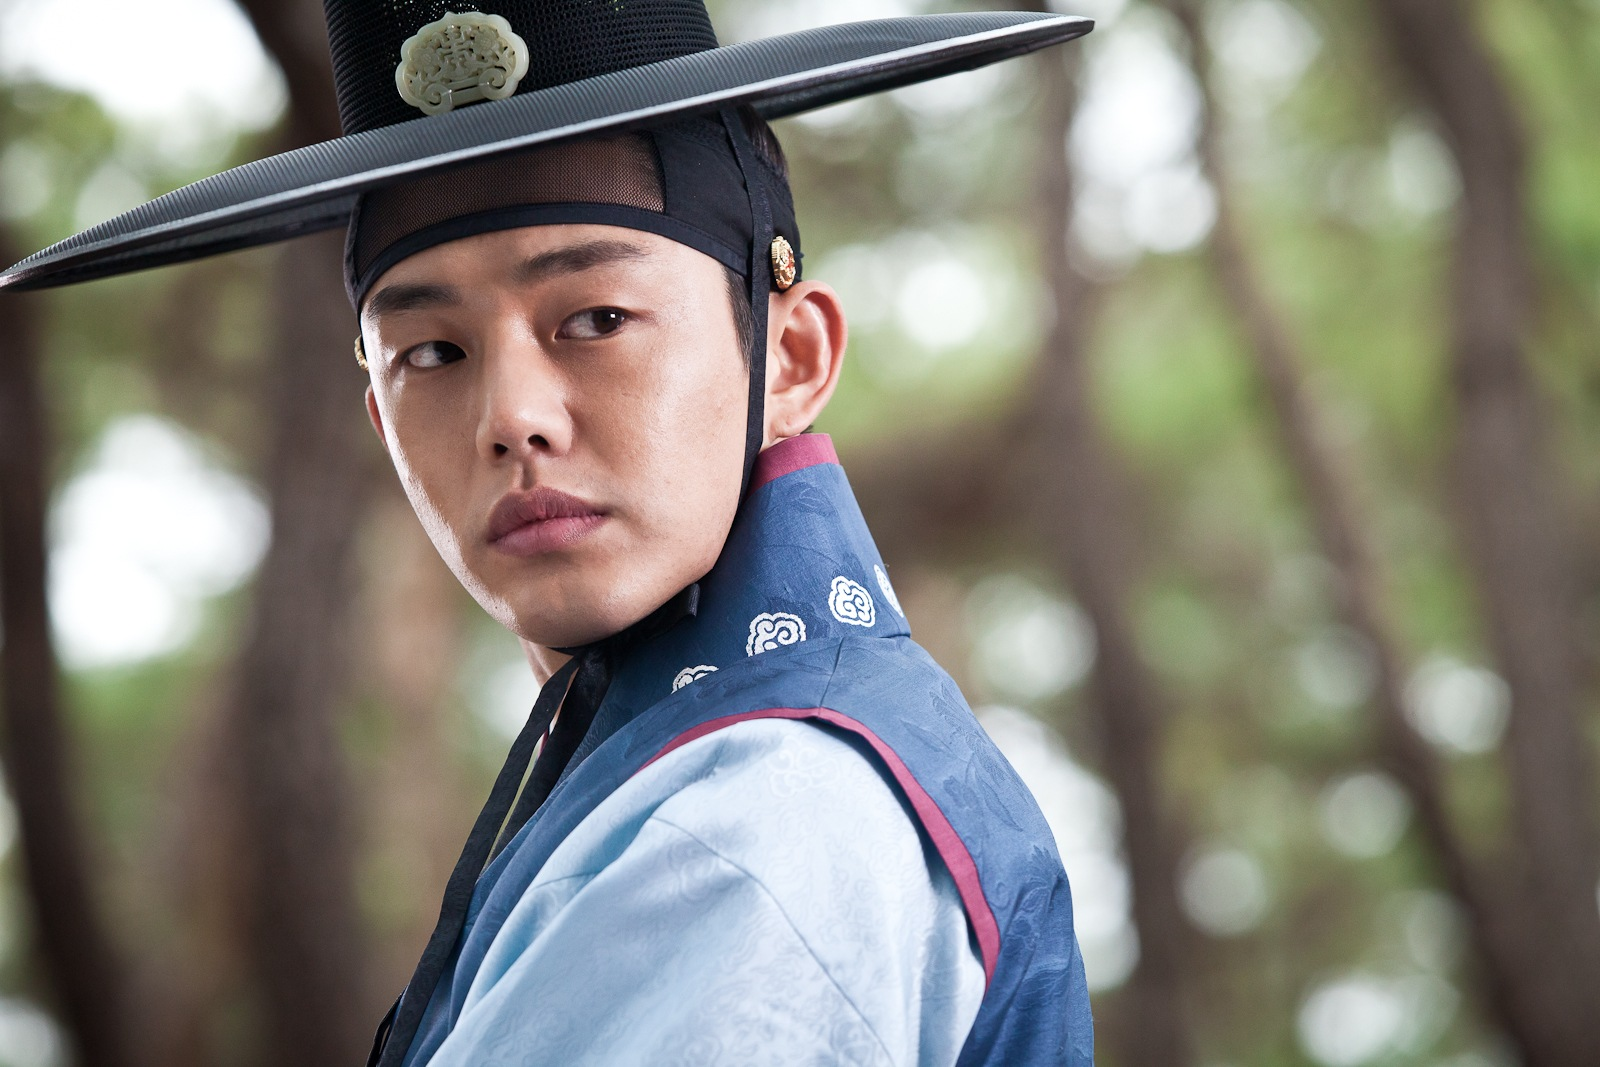 Yoo ah-in (secret love affair) and moon geun-young (goddess of fire jung-yi) have joined the p